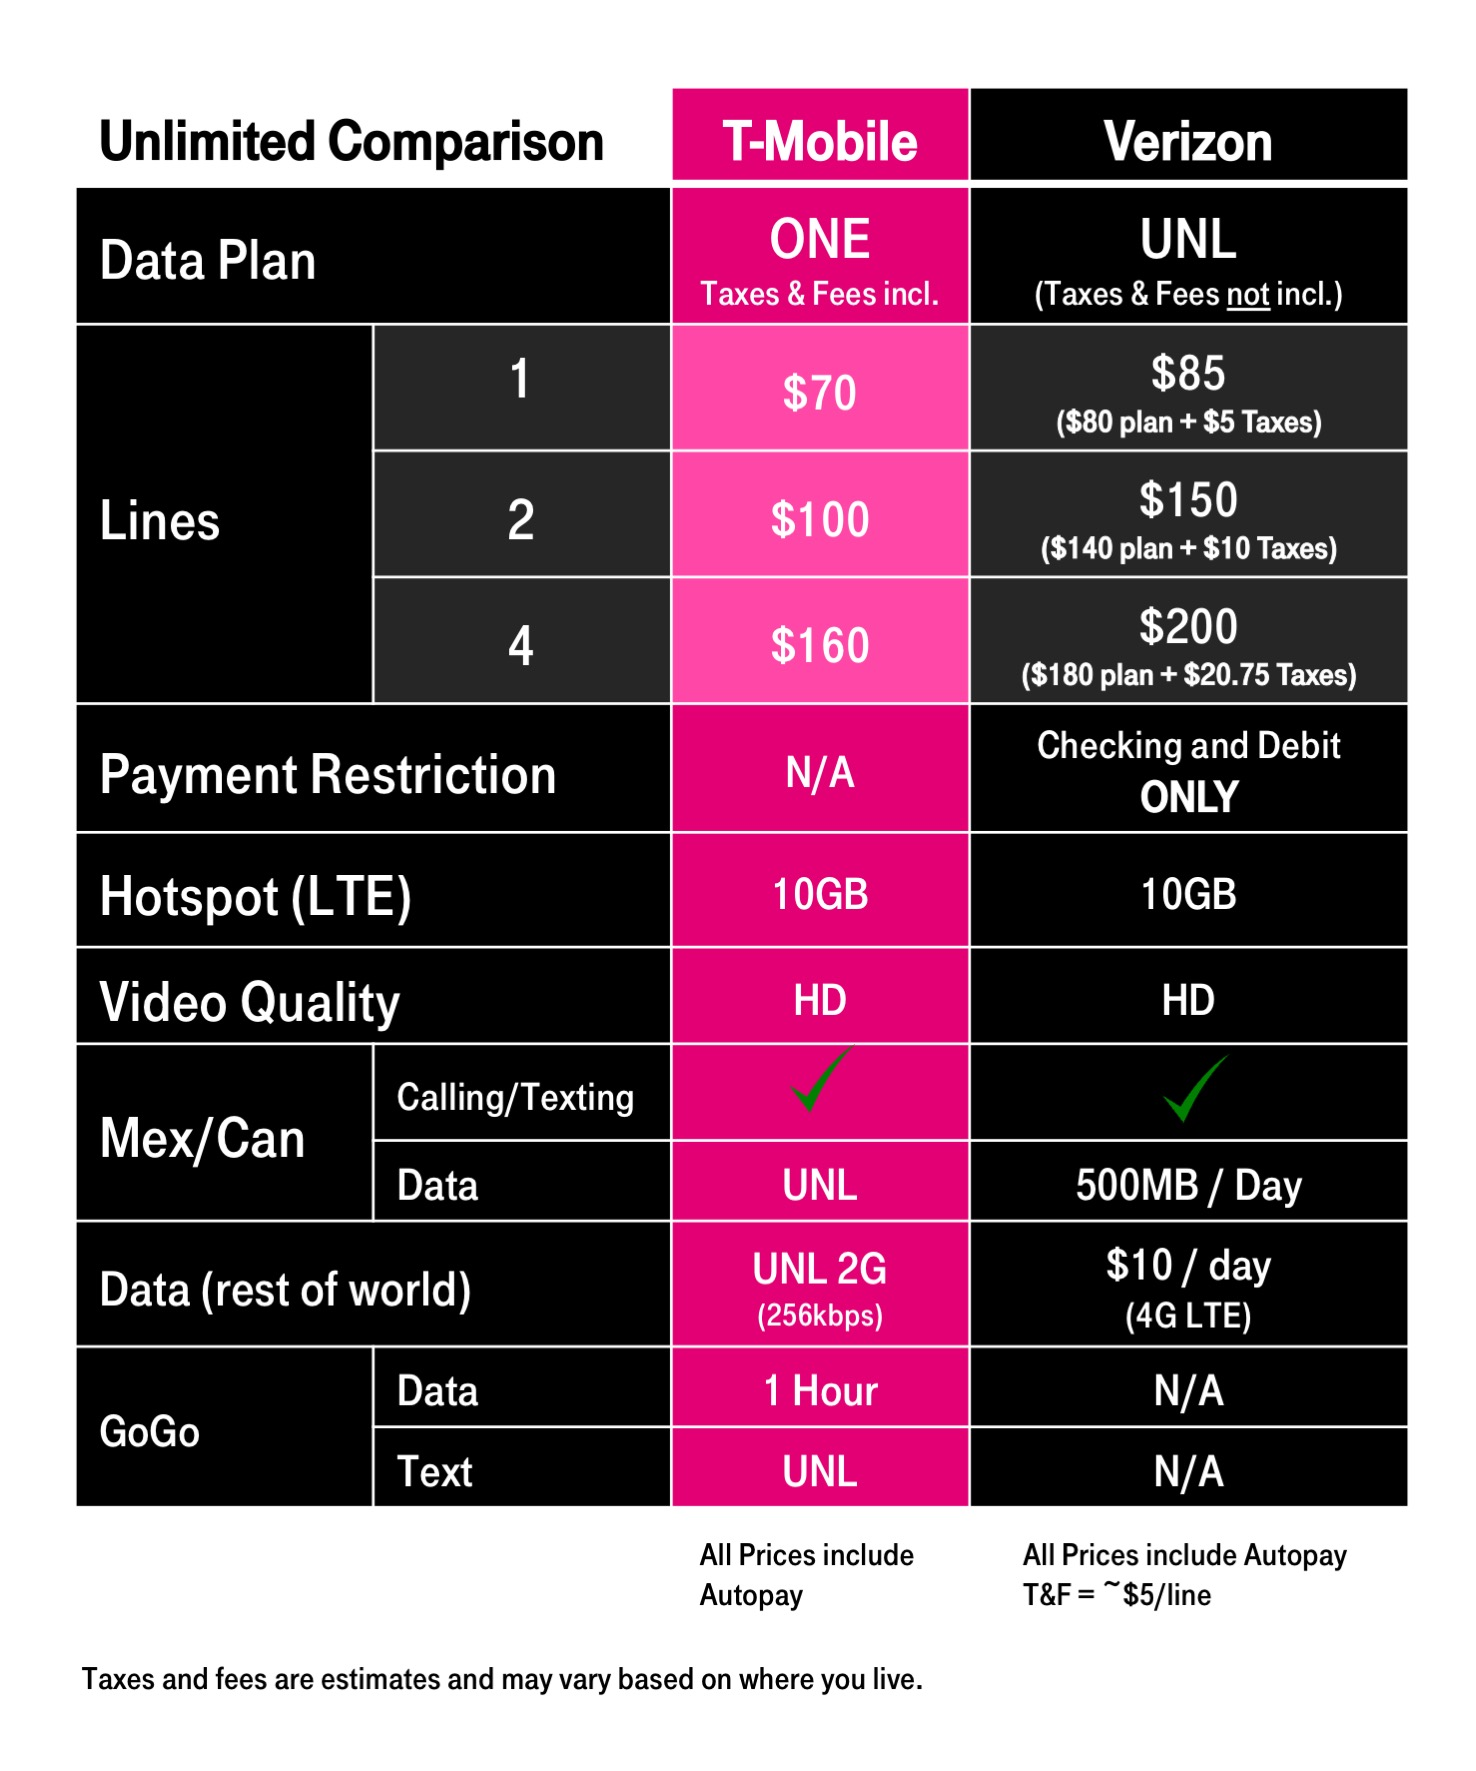 T-Mobile ONE Unlimited Plan to Now Offer HD Video and 10GB High-Speed Hotspot Data, Your Move Verizon